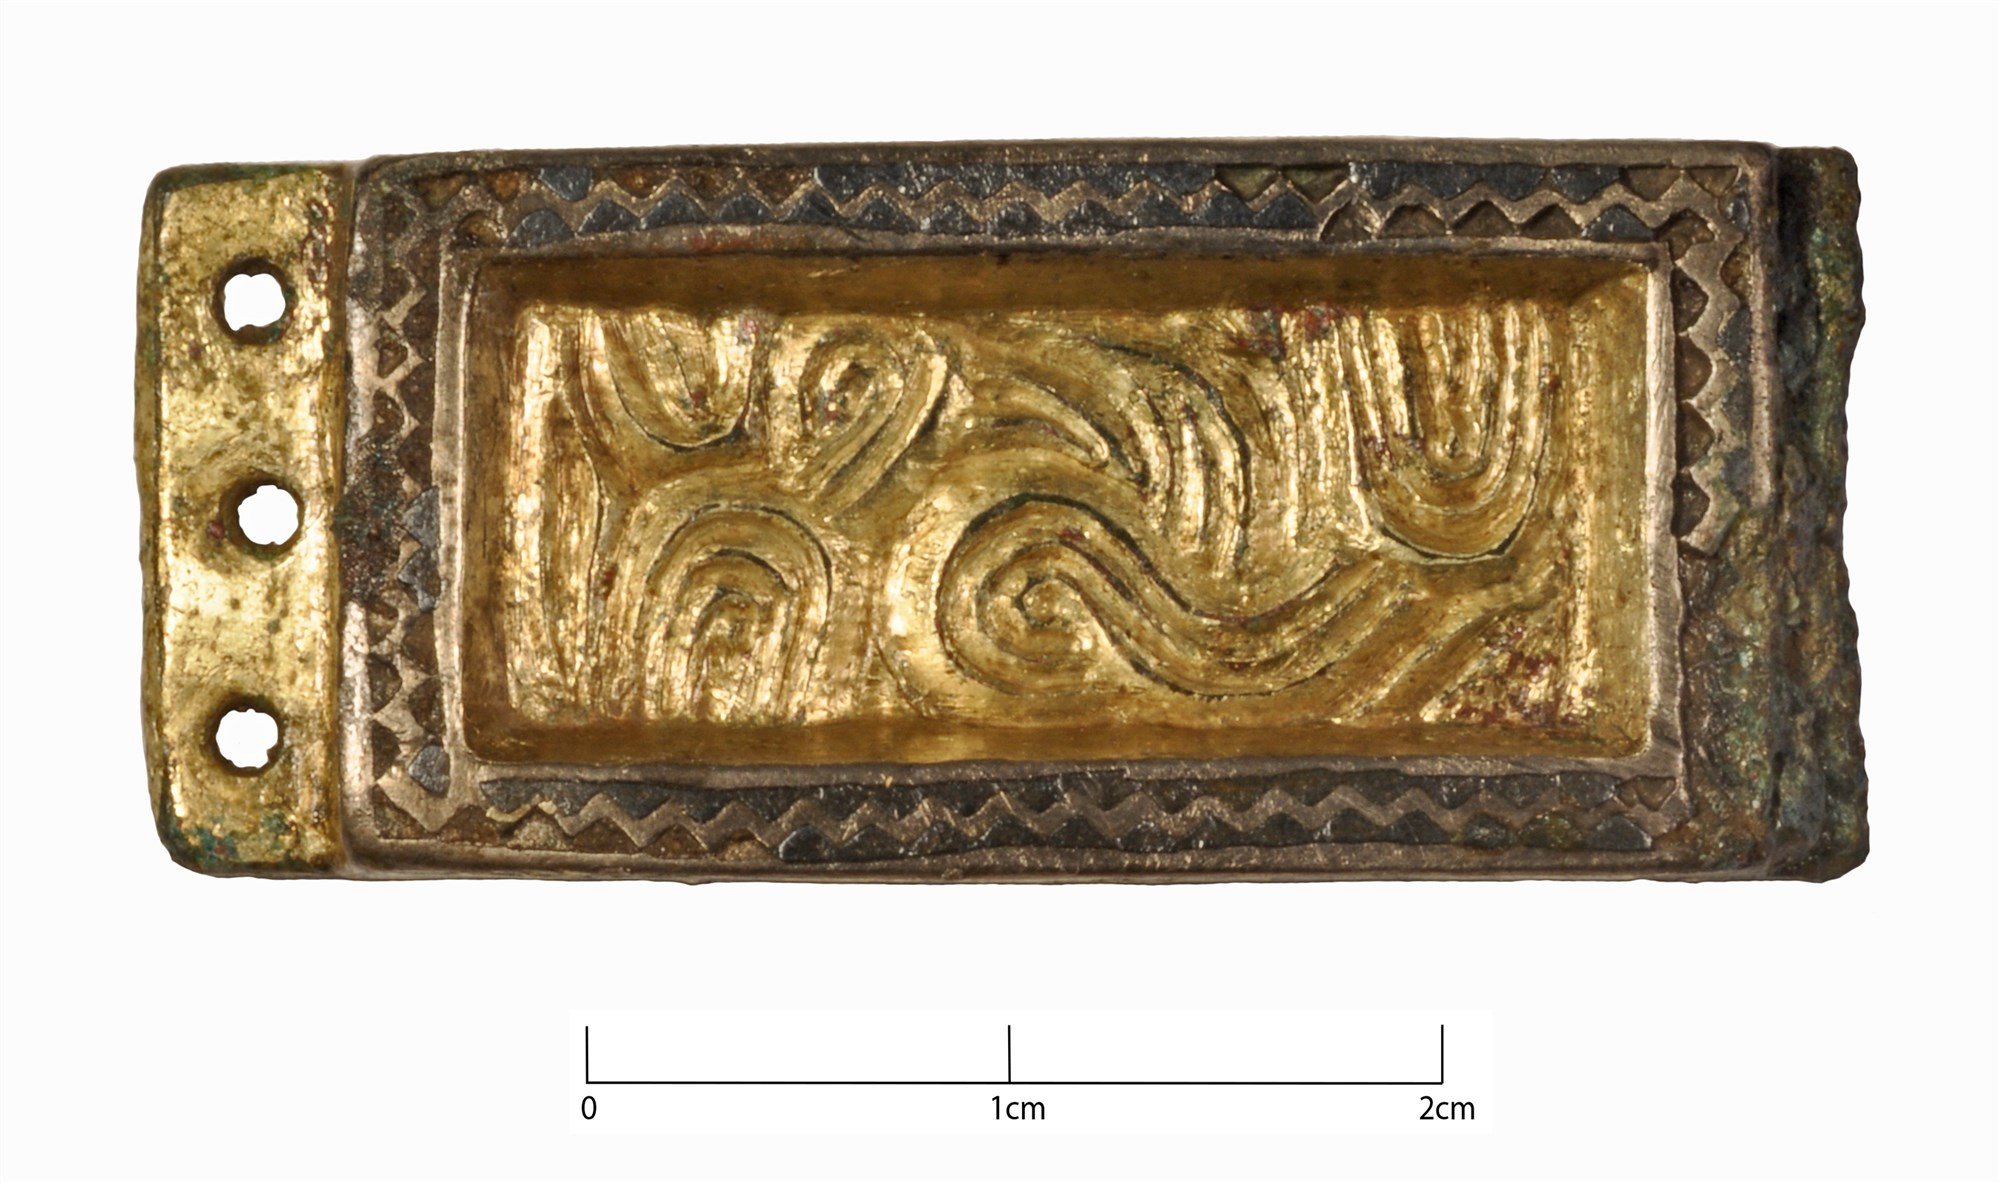 Anglo-Saxon copper alloy gilded buckle mount - after cleaning and conservation